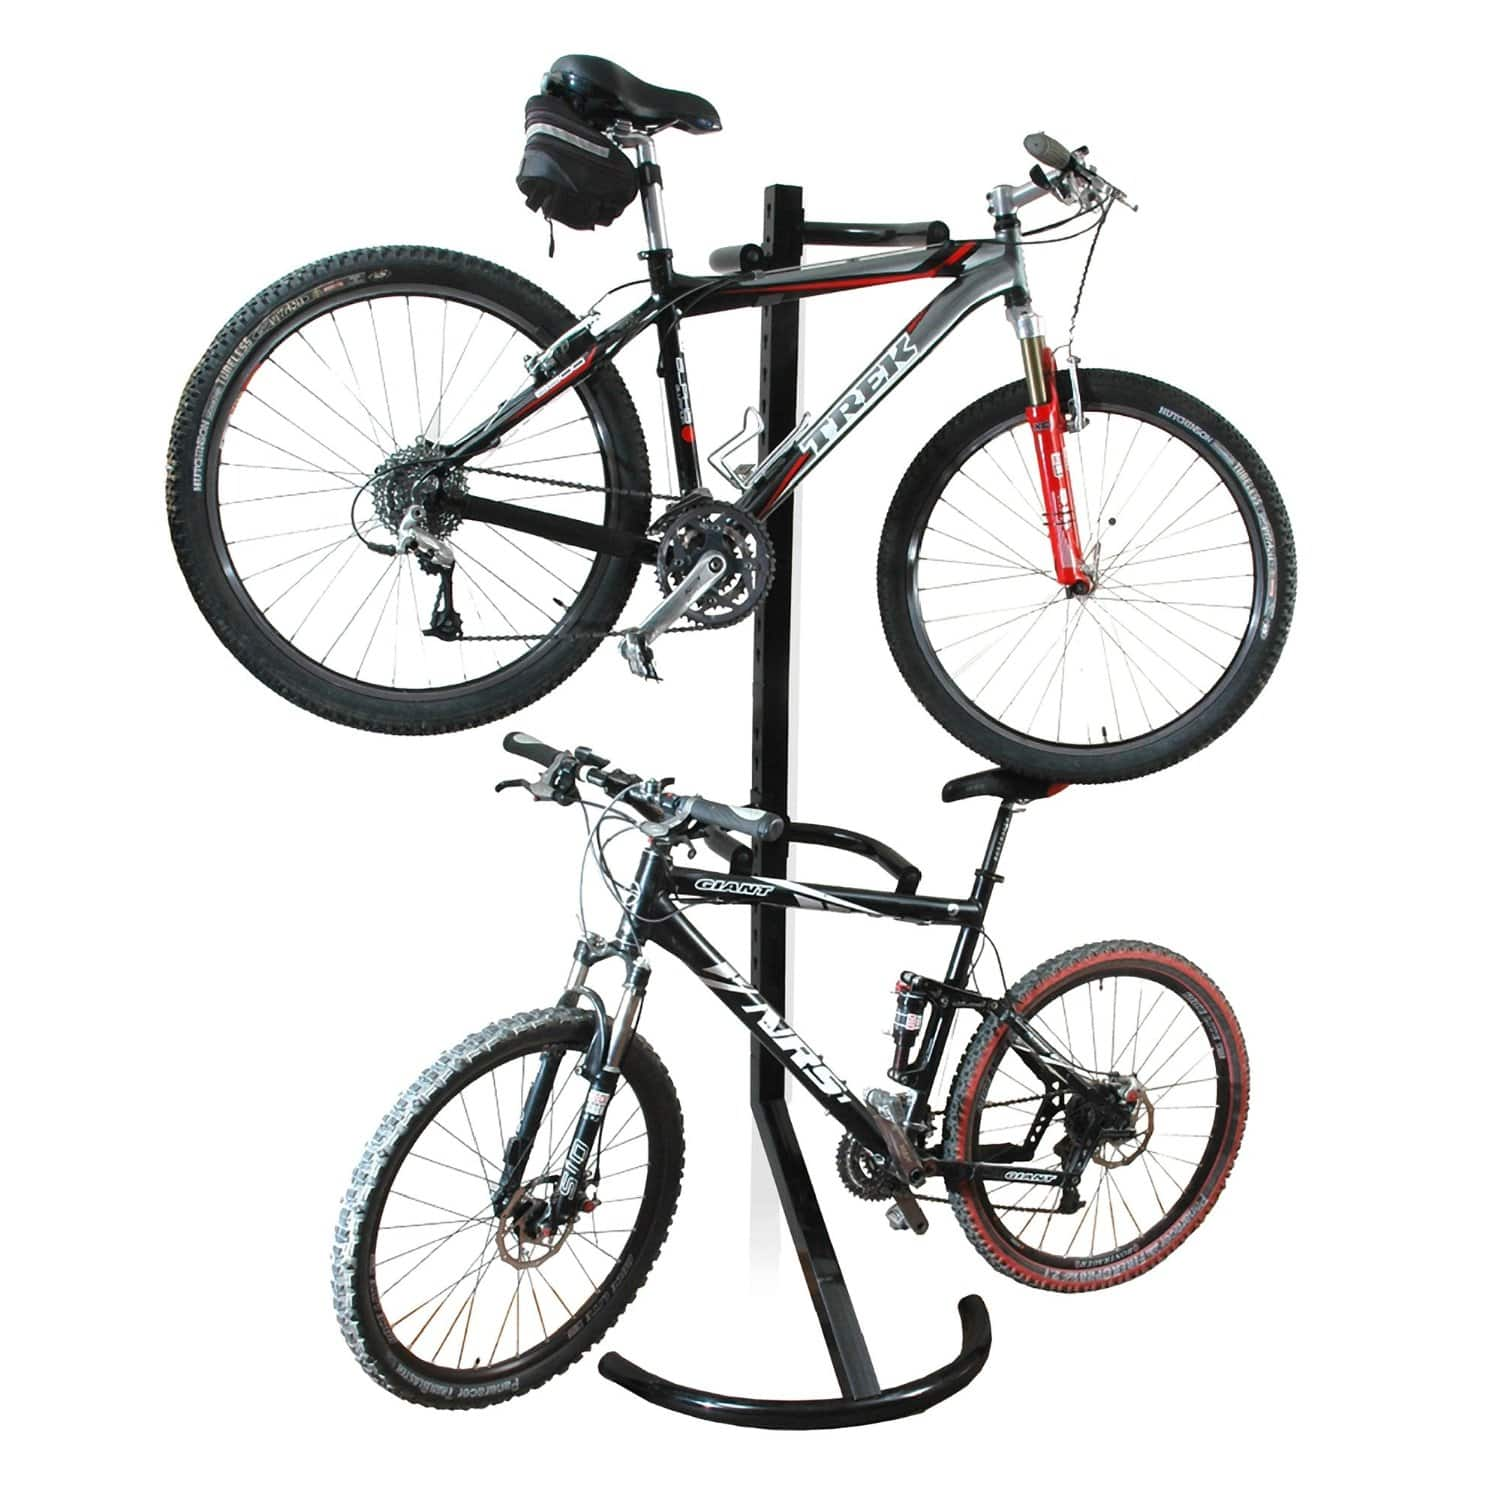 Storage bike stand for two bicycles $44.77 + FS @Amazon